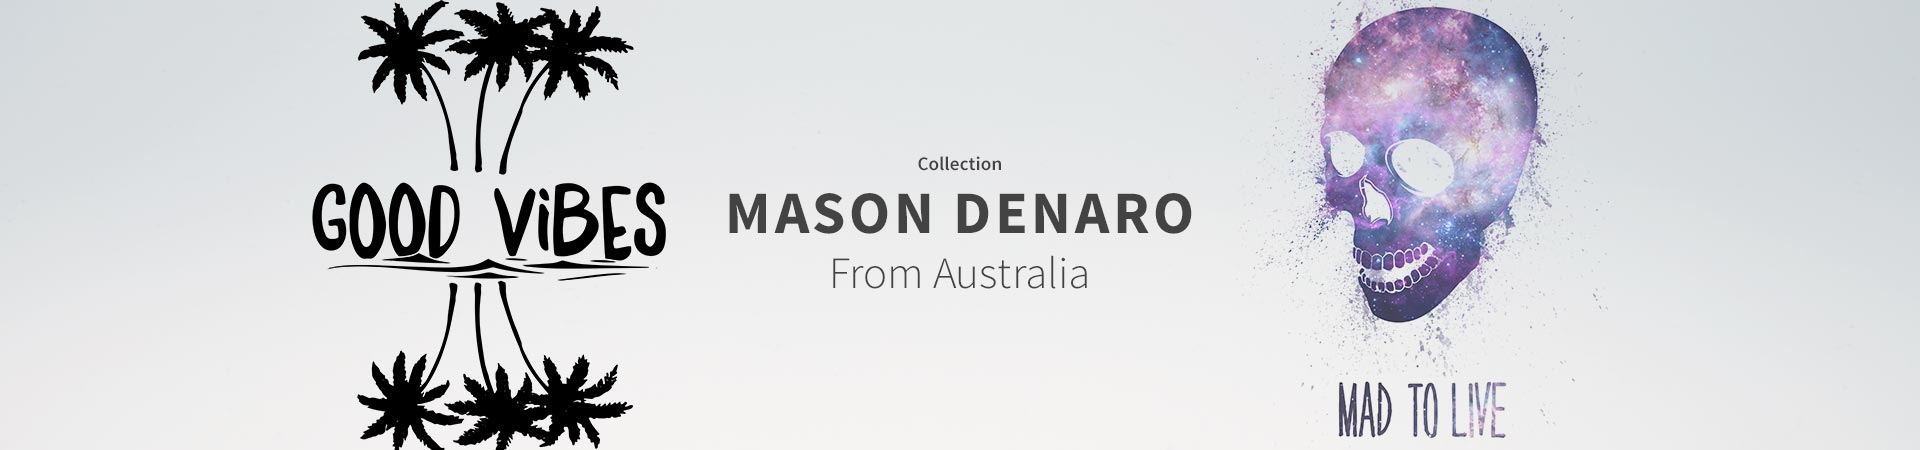 Collection Mason Denaro